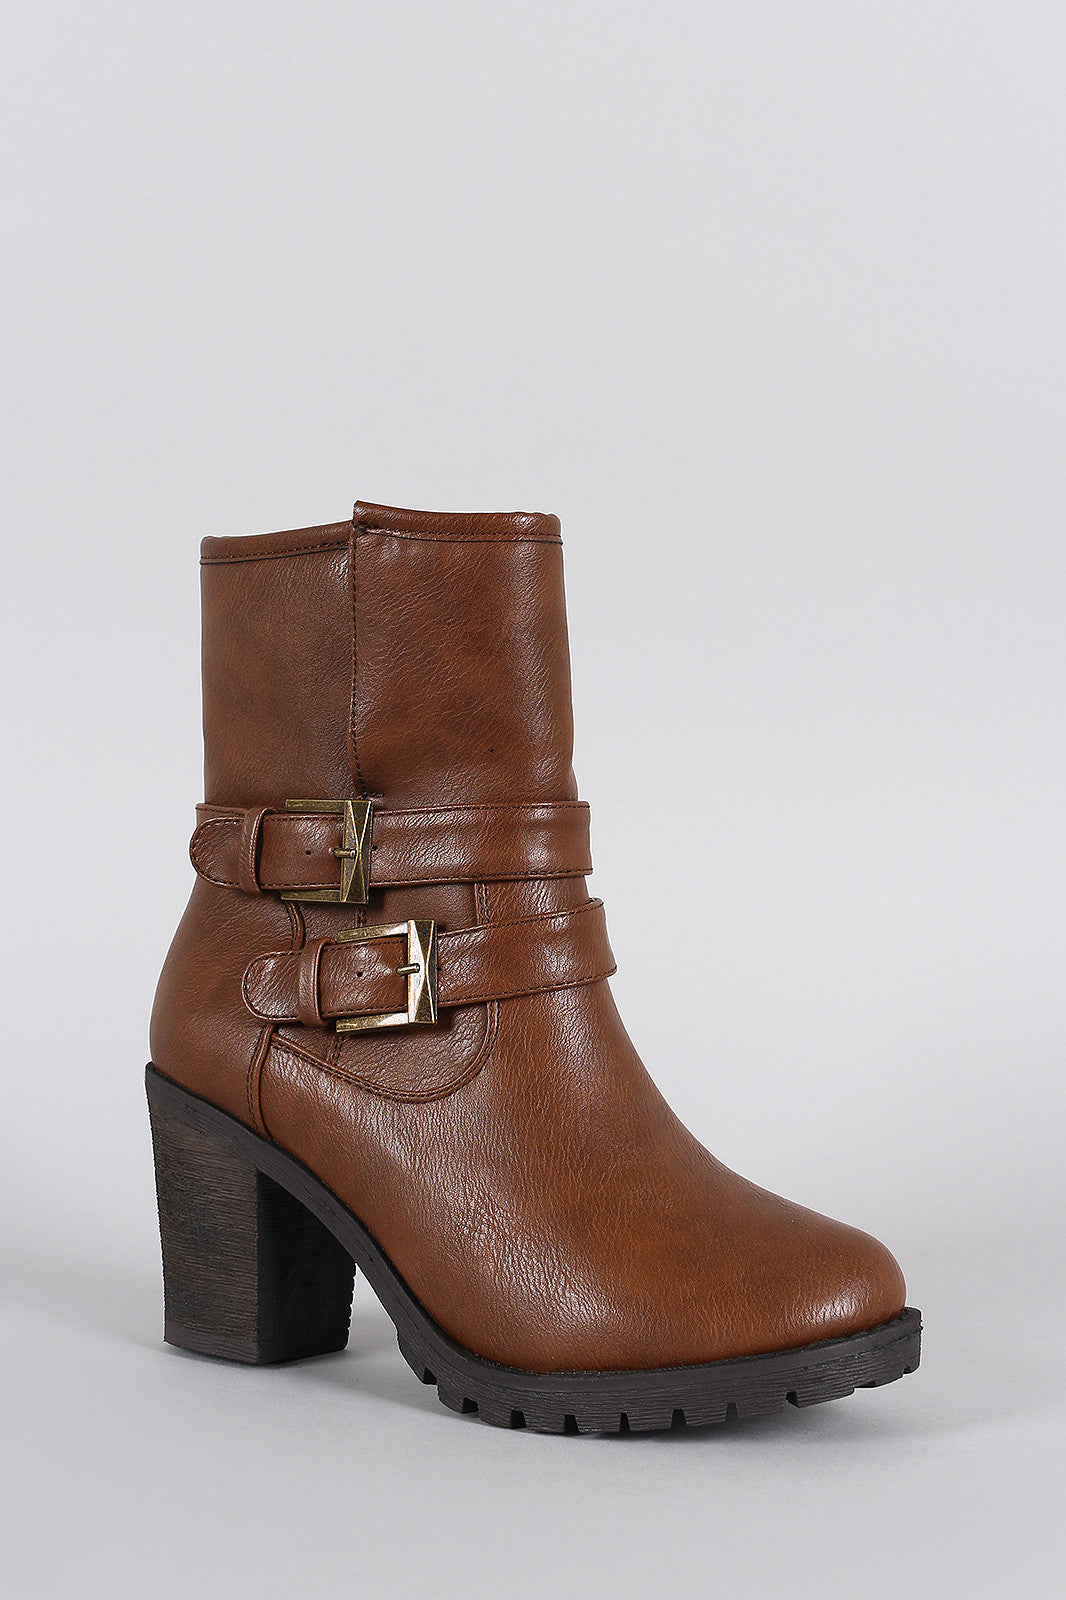 Slit Moto Lug Chunky Heel Ankle Boots - Thick 'N' Curvy Shop - 3